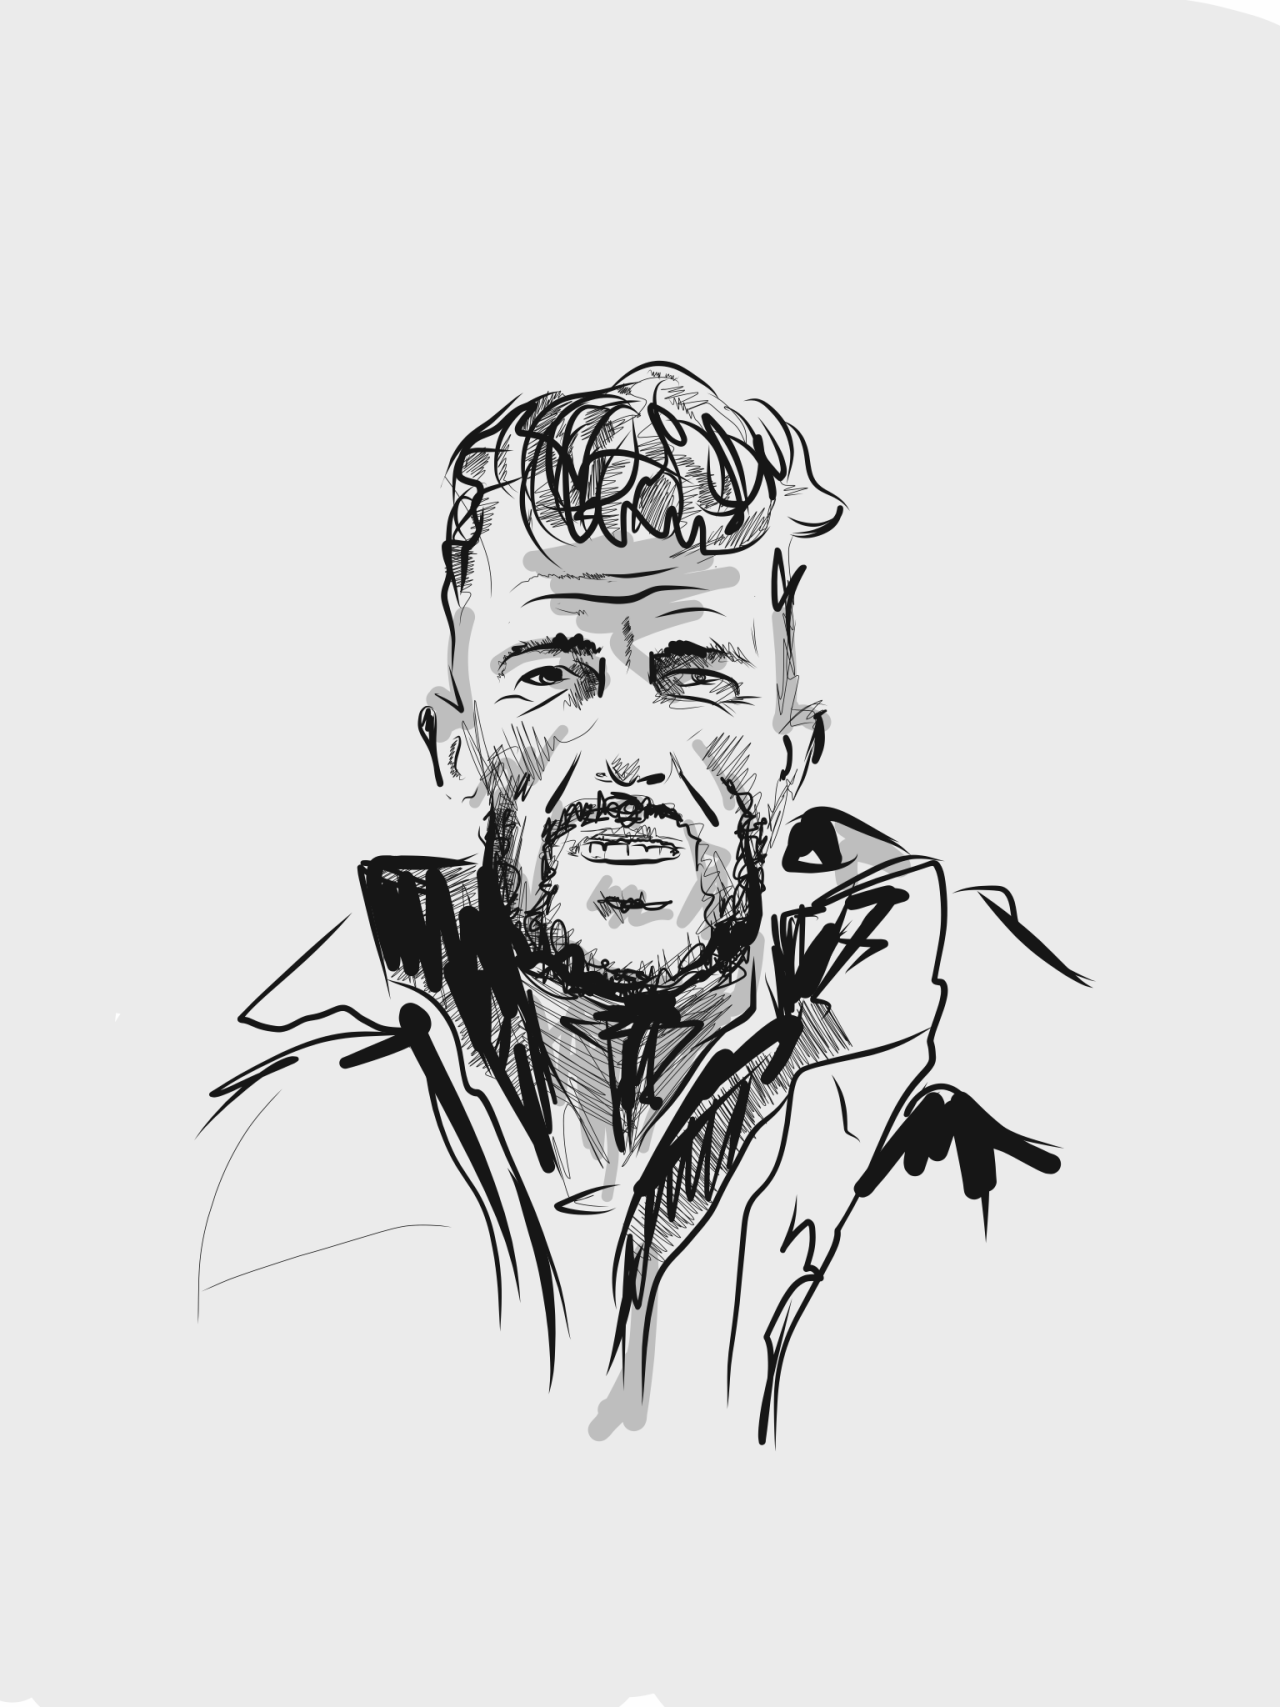 Illustration of Edmund Hillary, the first man to climb